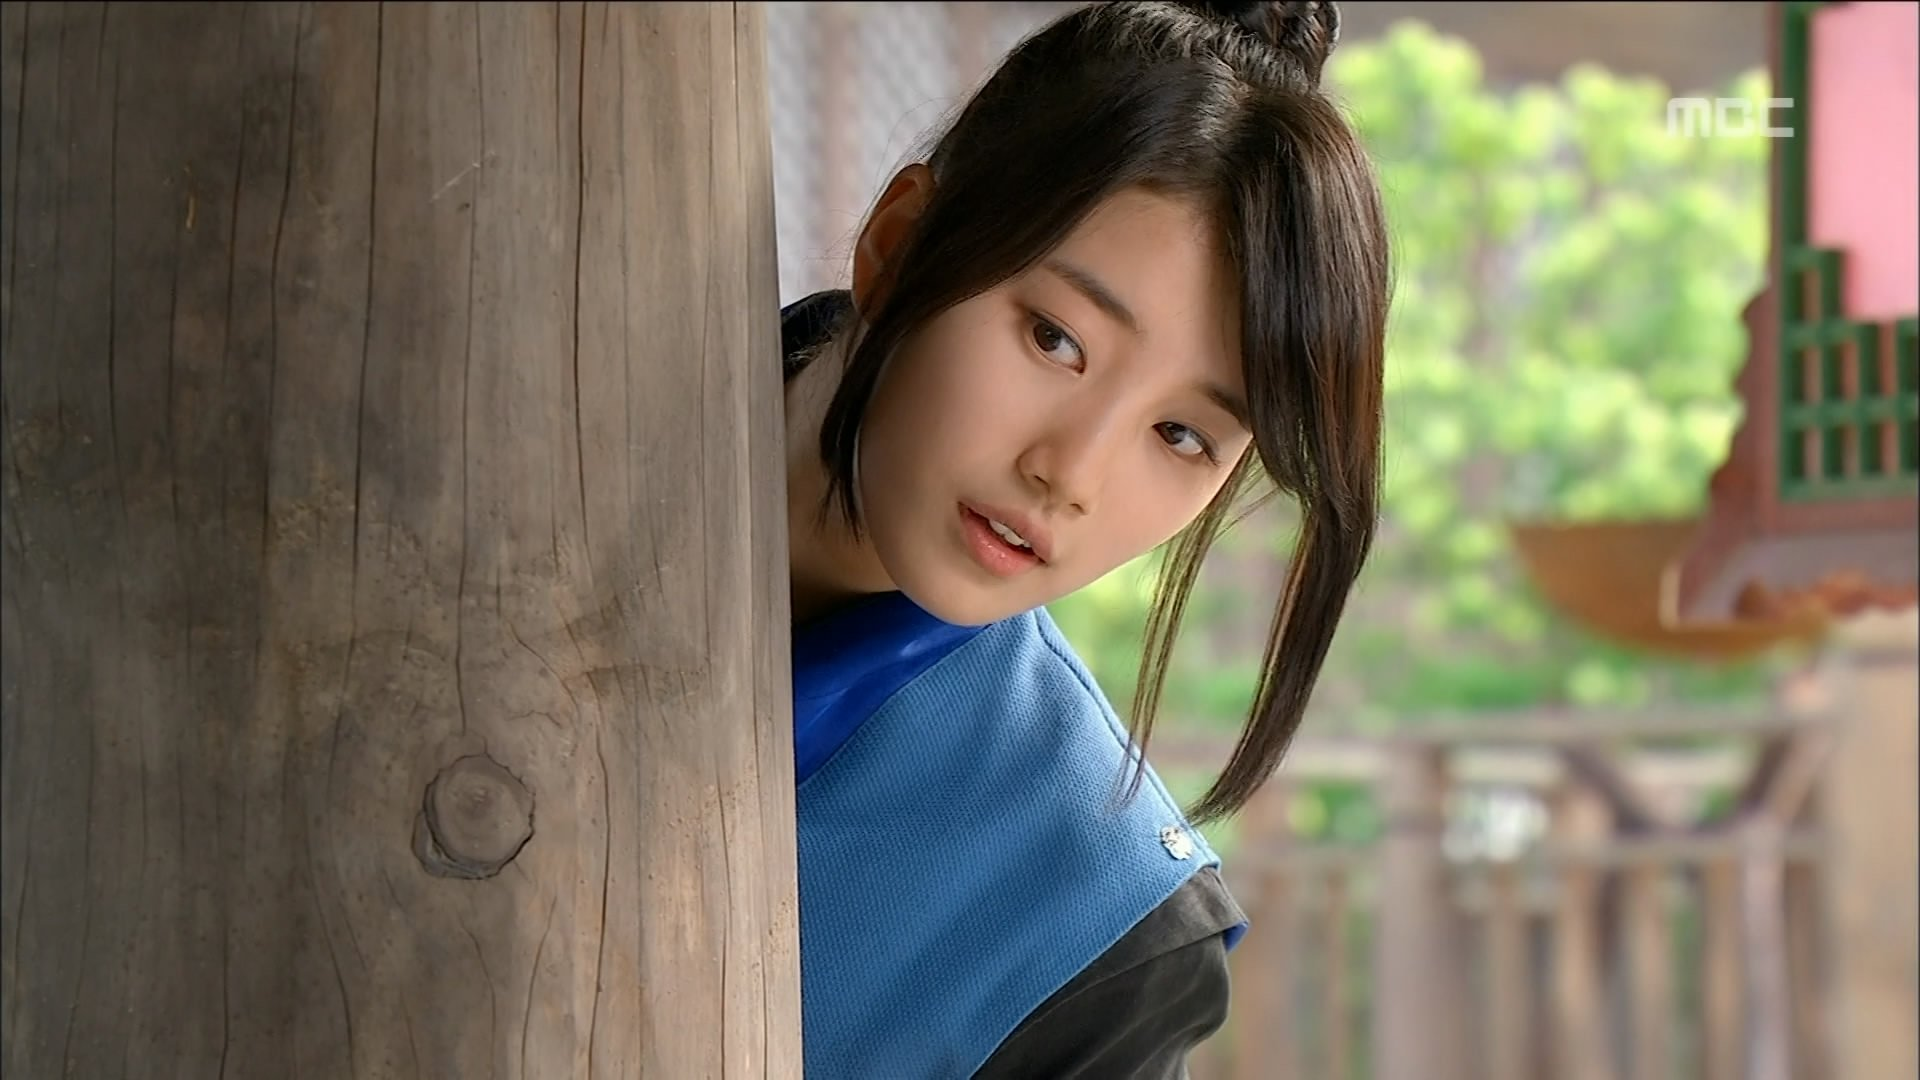 Gu Family Book Bae Suzy Wallpaper 1920x1080 644883 Wallpaperup